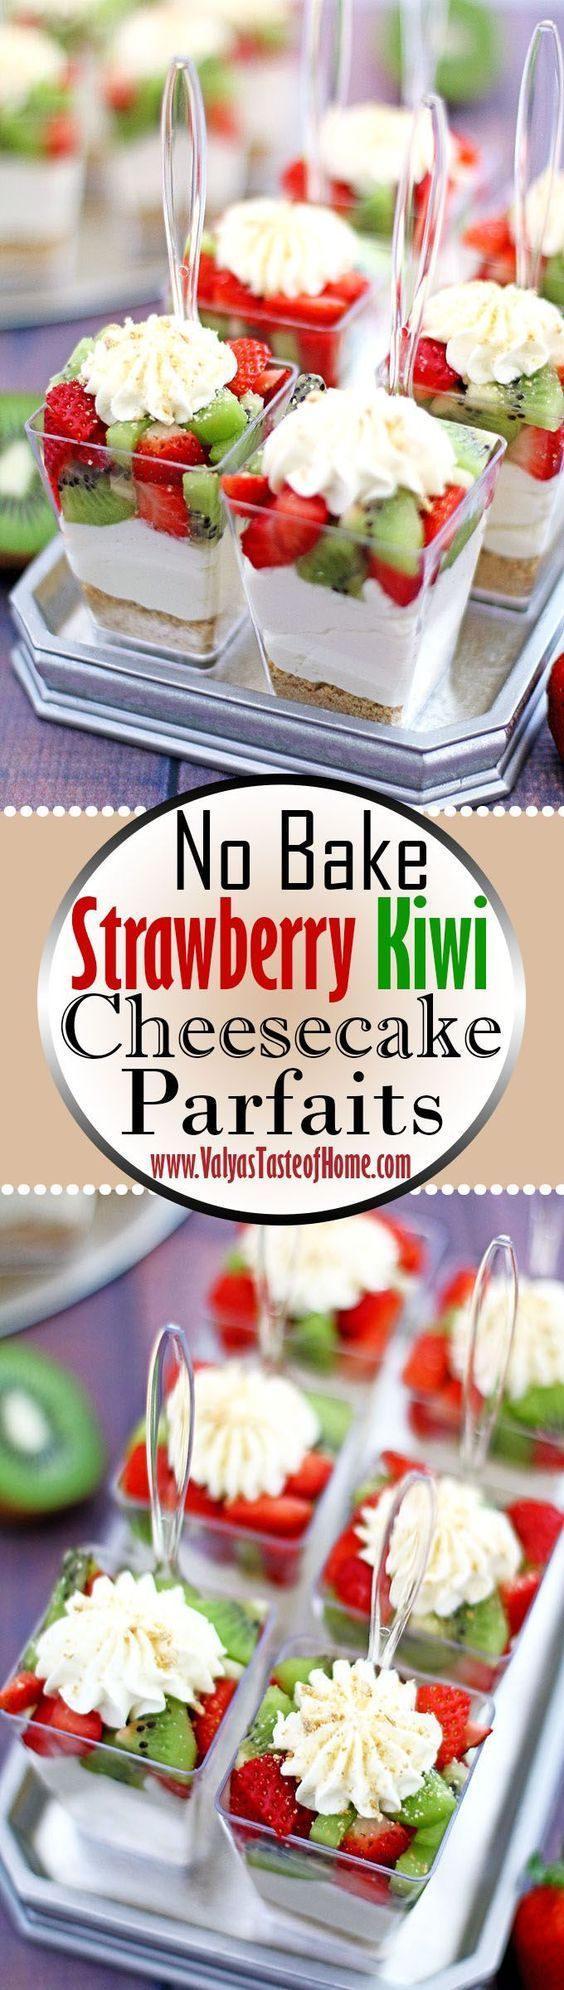 These little individual creamy No Bake Strawberry Kiwi Cheesecake Parfaits cups are party perfect! Super easy to put together with minimal effort to make a wonderful attention and hand grabber. It makes it on the winner's list of any occasion any time of the year for its simplicity and deliciousness. They can be whipped up quickly as a last-minute party dessert and double as a beautiful décor on the table.   www.valyastasteofhome.com